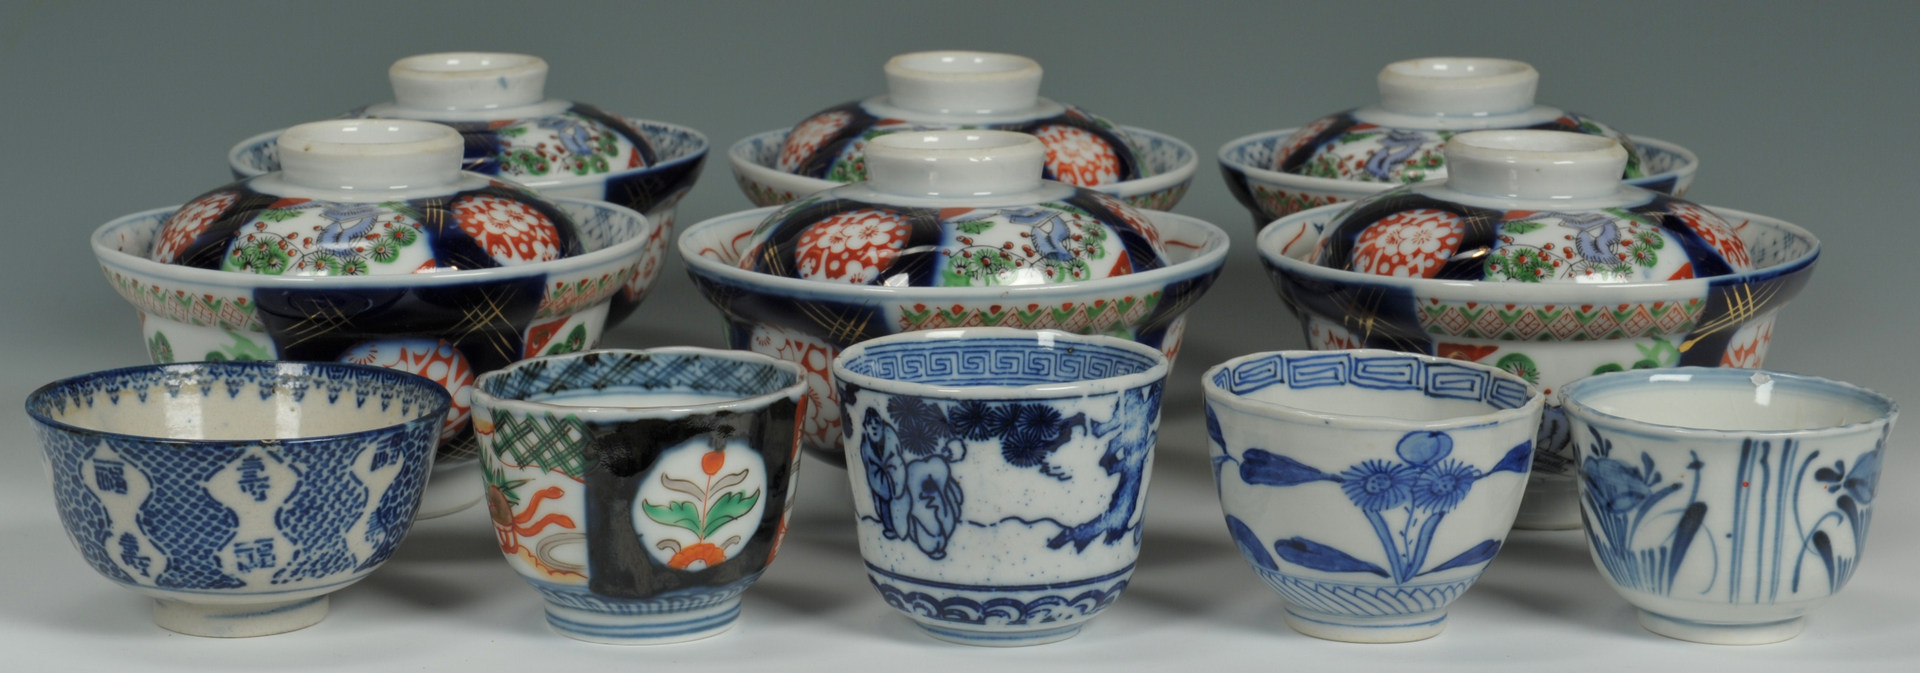 Lot 489: Grouping of Asian Porcelain, 11 items